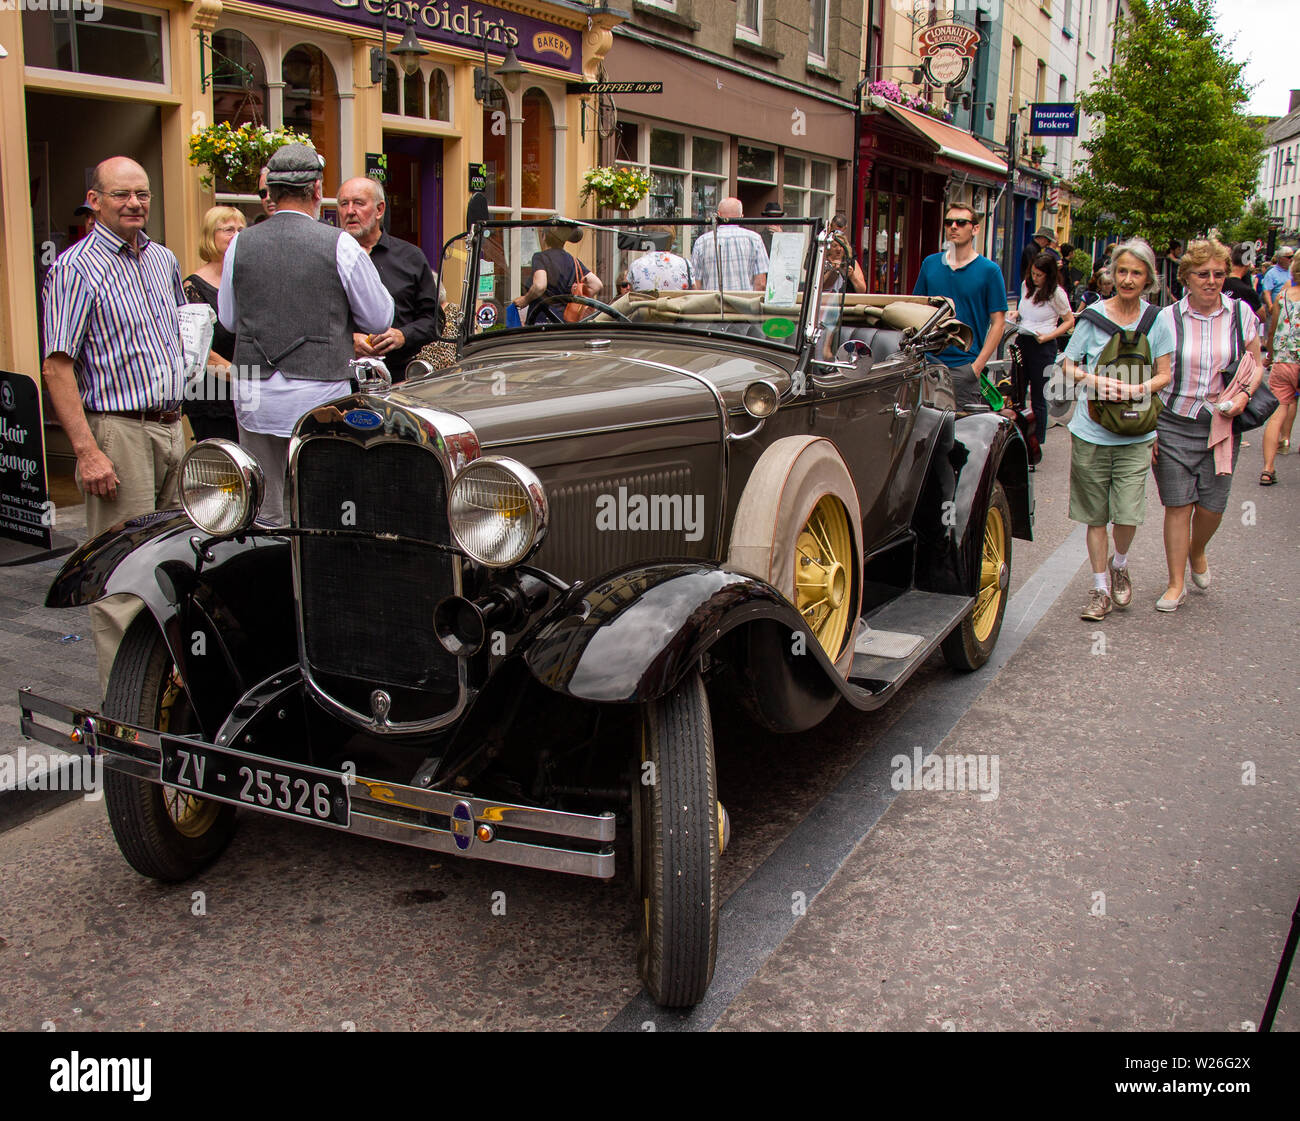 vintage-ford-soft-top-motor-car-parked-on-a-high-street-W26G2X.jpg